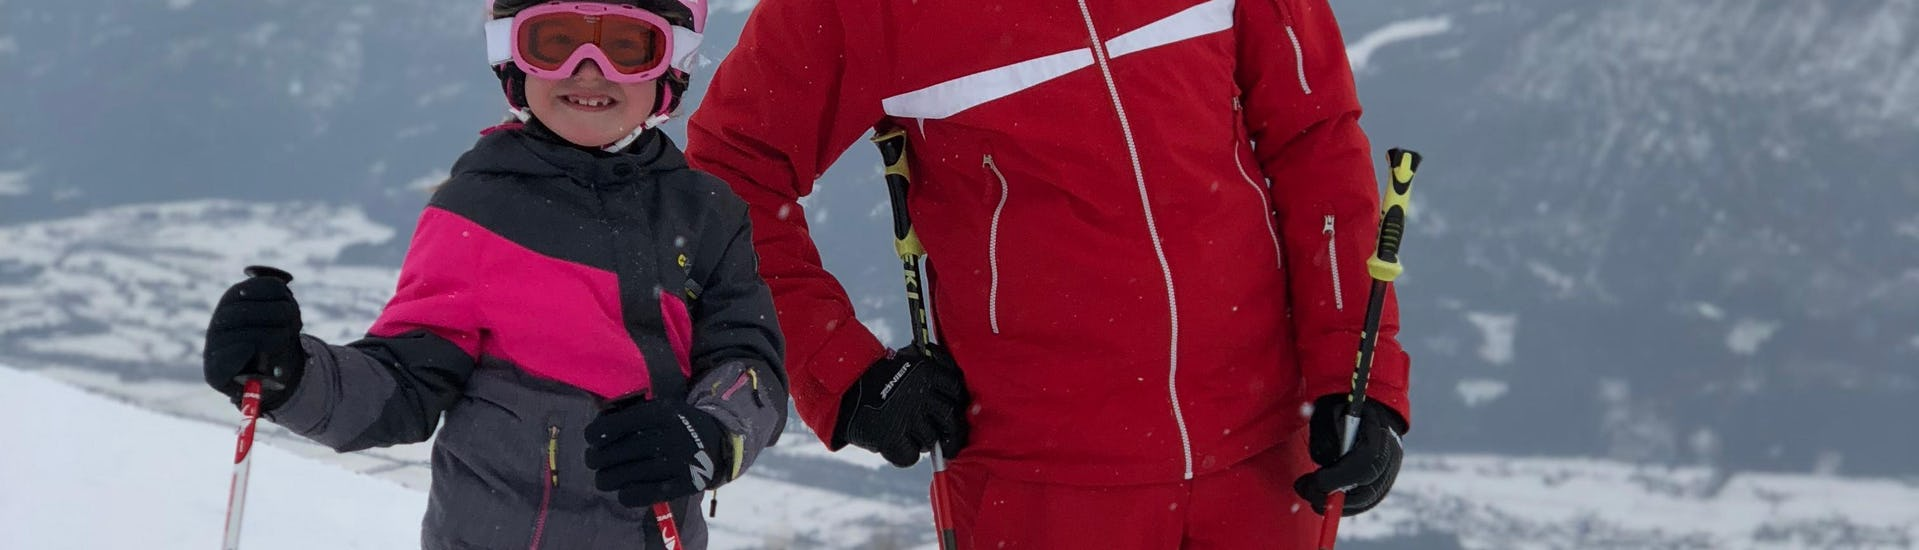 Ski Instructor Private  - All Ages